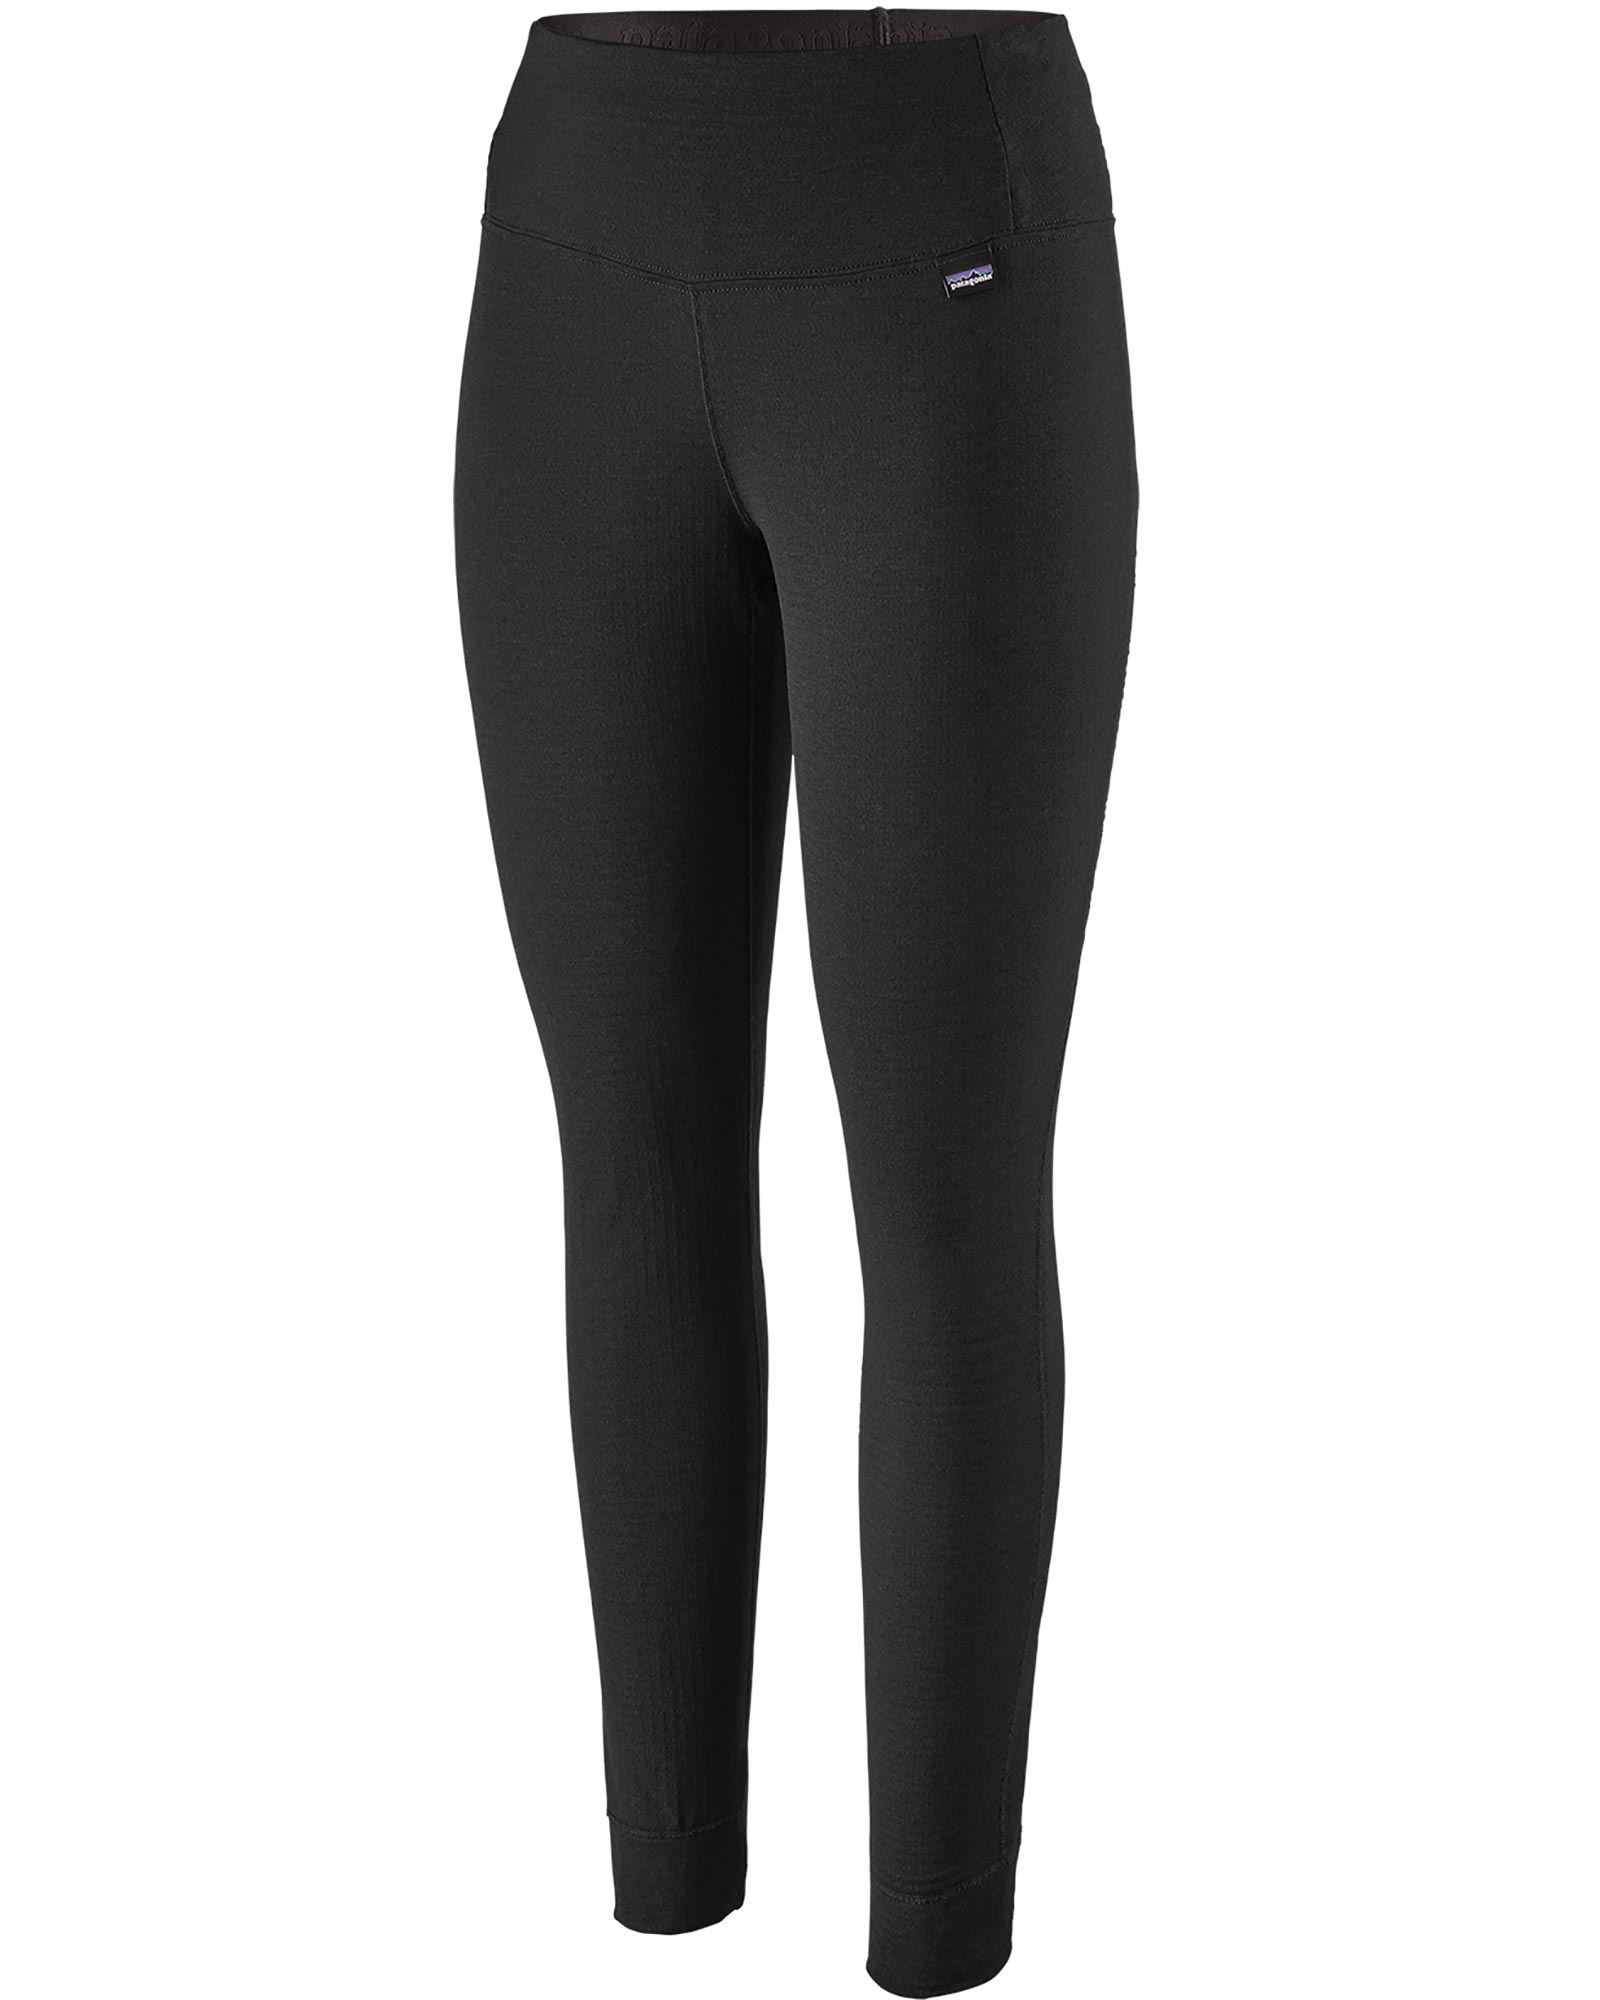 Patagonia Women's Capilene Thermal Weight Tights 0